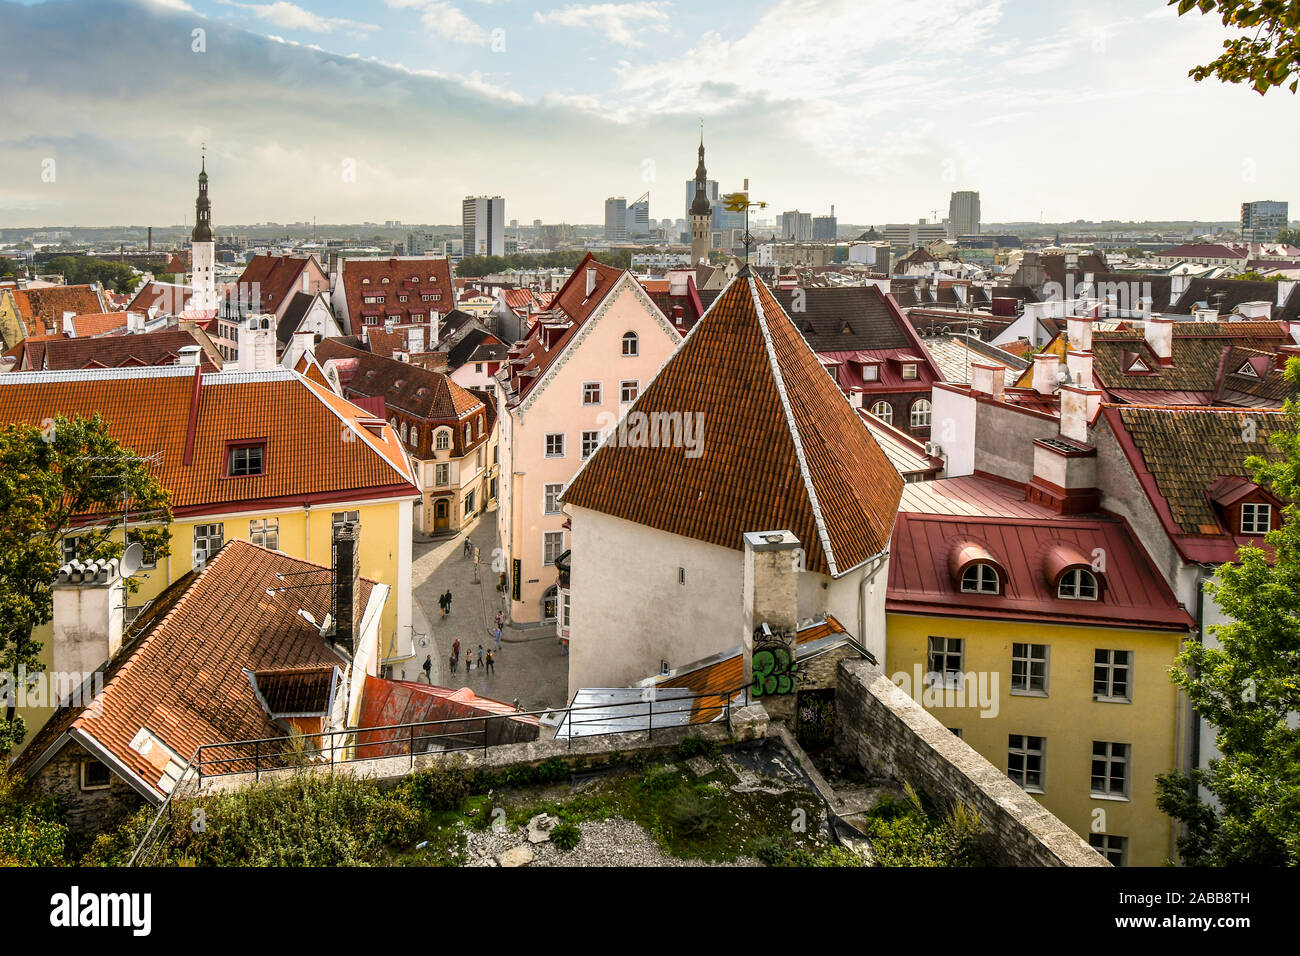 View of the medieval streets and rooftops of lower old town Tallinn, Estonia from upper town Toompea Hill on an overcast morning in late summer. Stock Photo